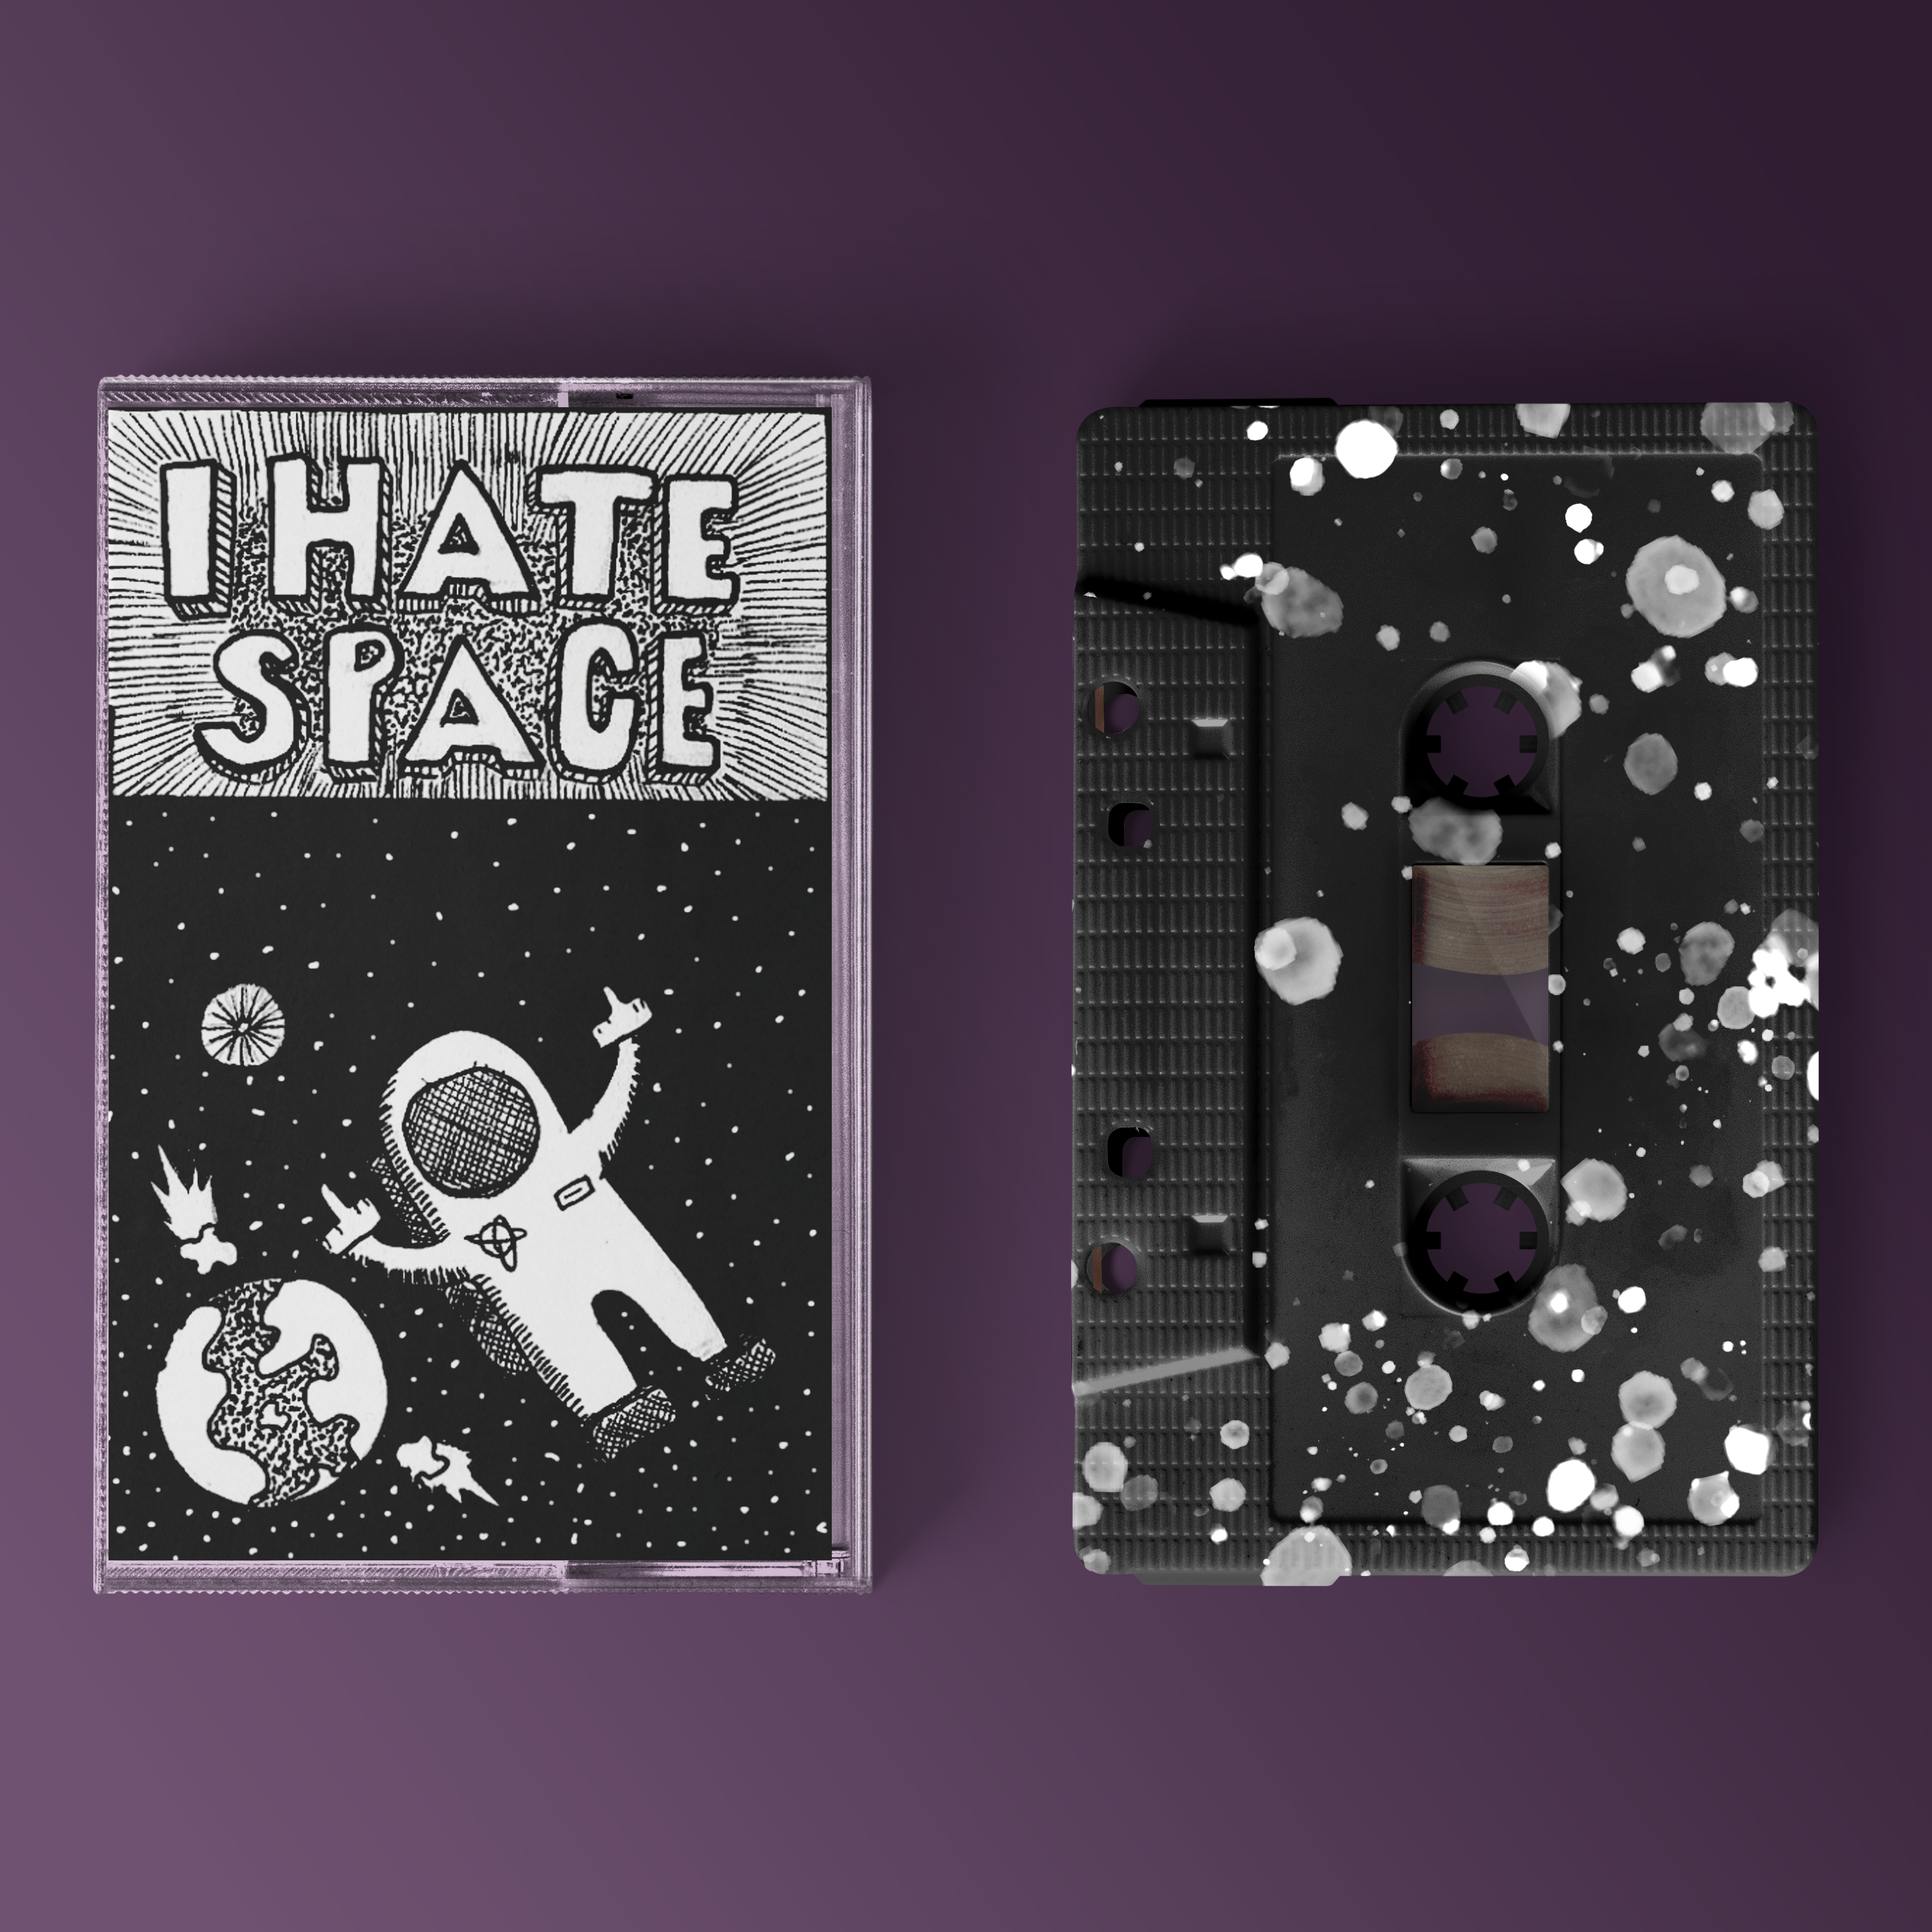 [KPR018] I HATE SPACE | Wasted Space & I Hate Homecoming SPLIT